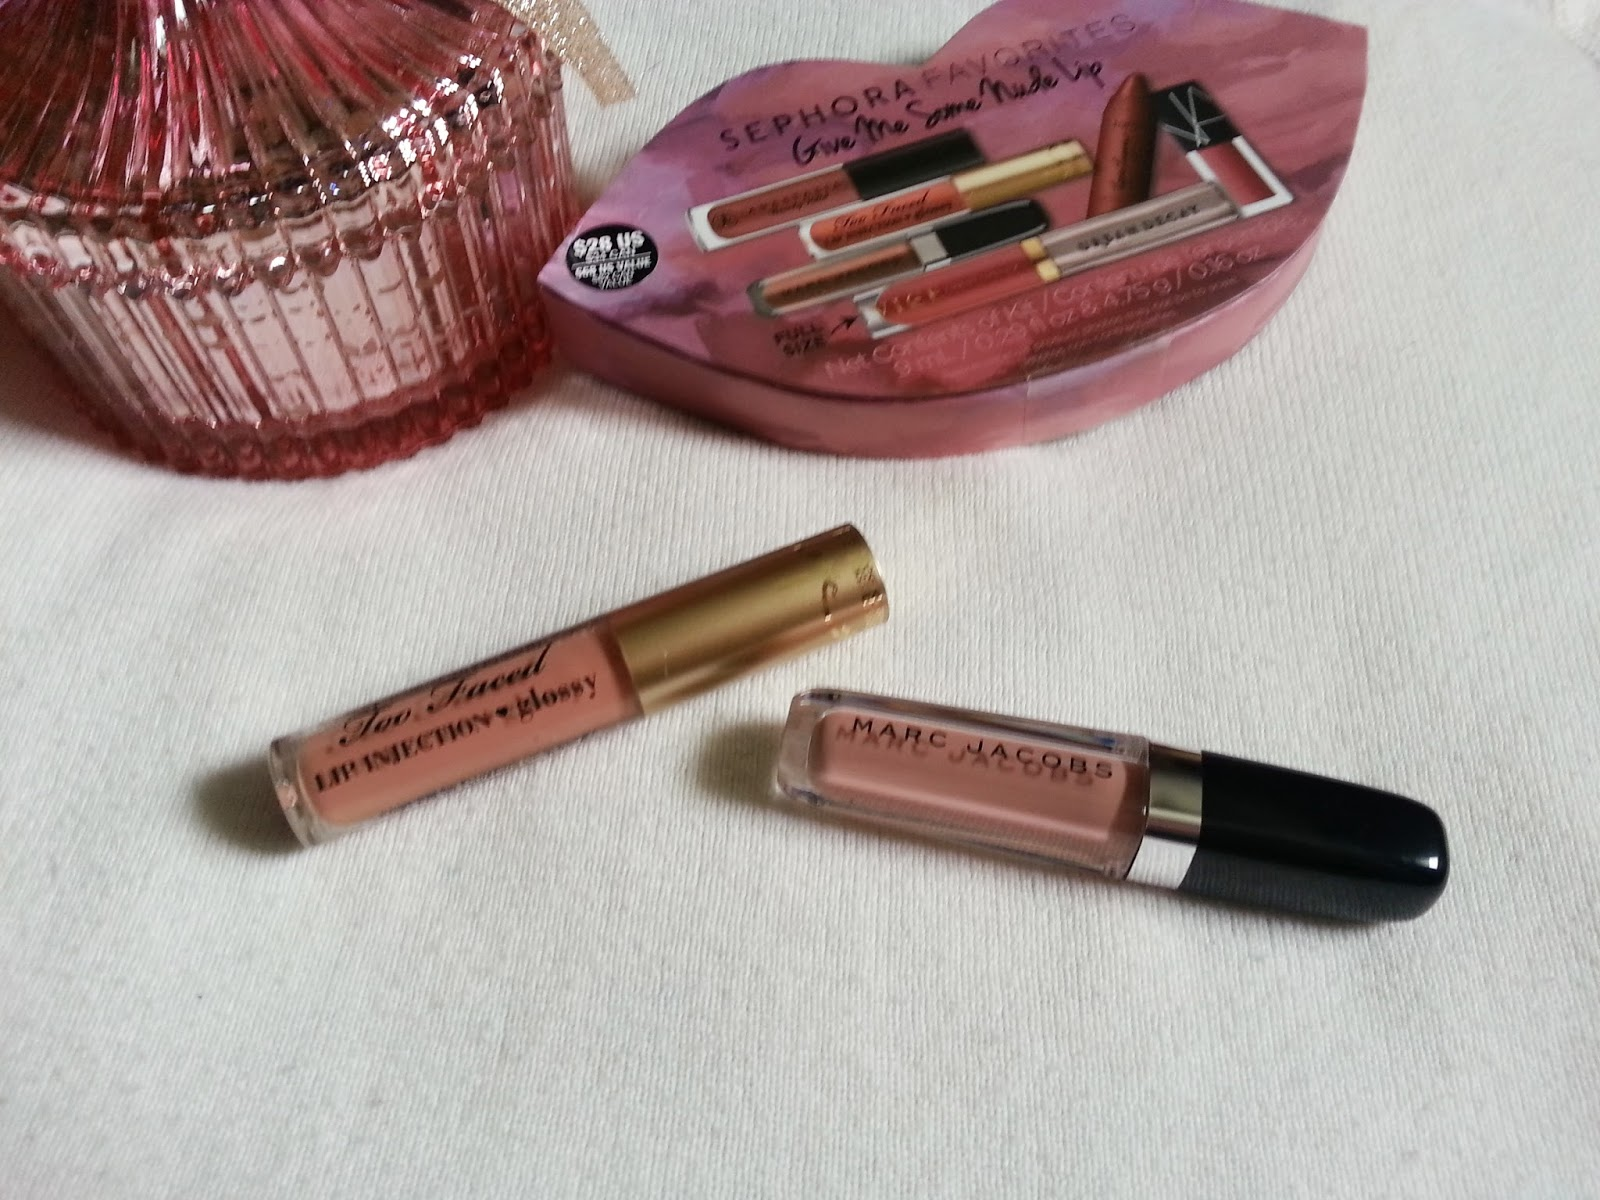 Deidres Discoveries Sephora Favorites Give Me Some Nude Lip De Velvet Beverly Too Faced Injection Glossy In Spice Girl Pink This Moisture Rich Gloss Is Infused With Faceds Bestselling Formula To Create